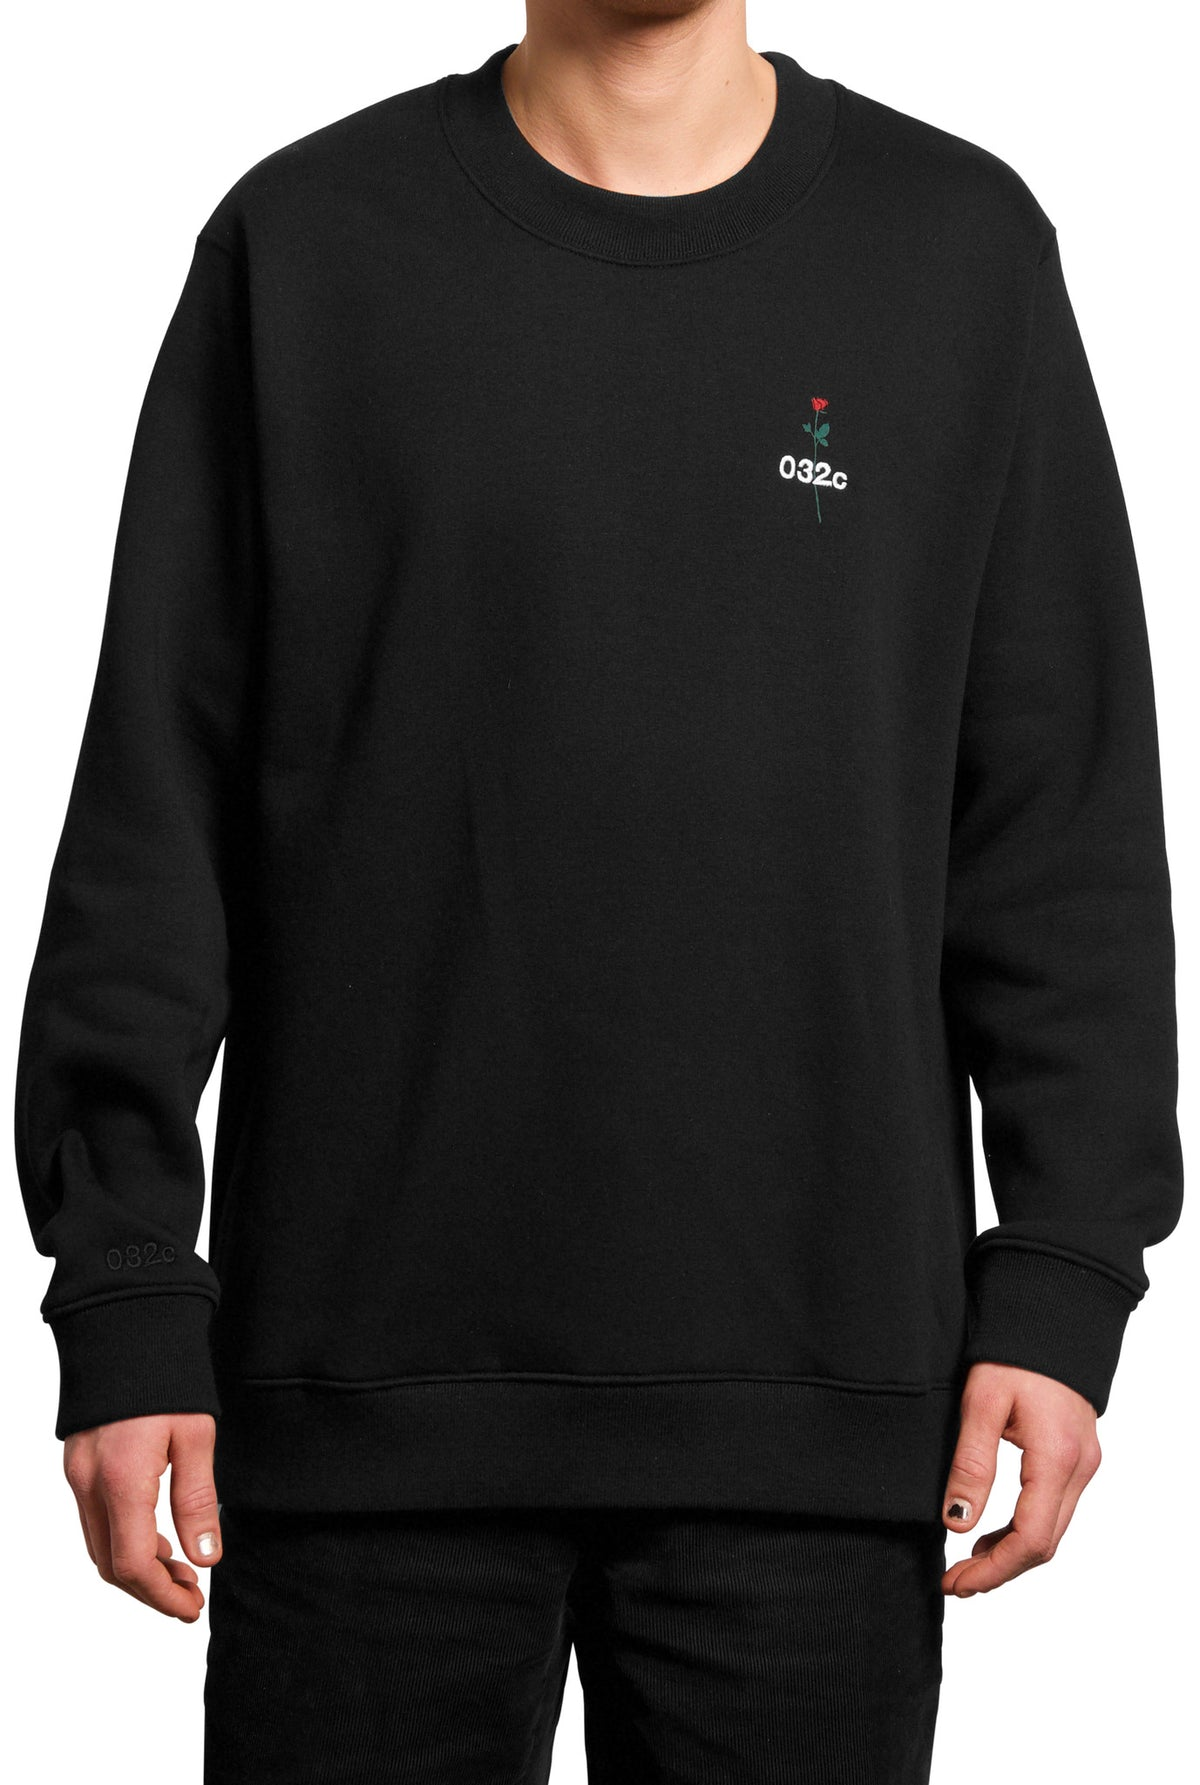 032c Don't Dream It's Over Sweatshirt - 032c